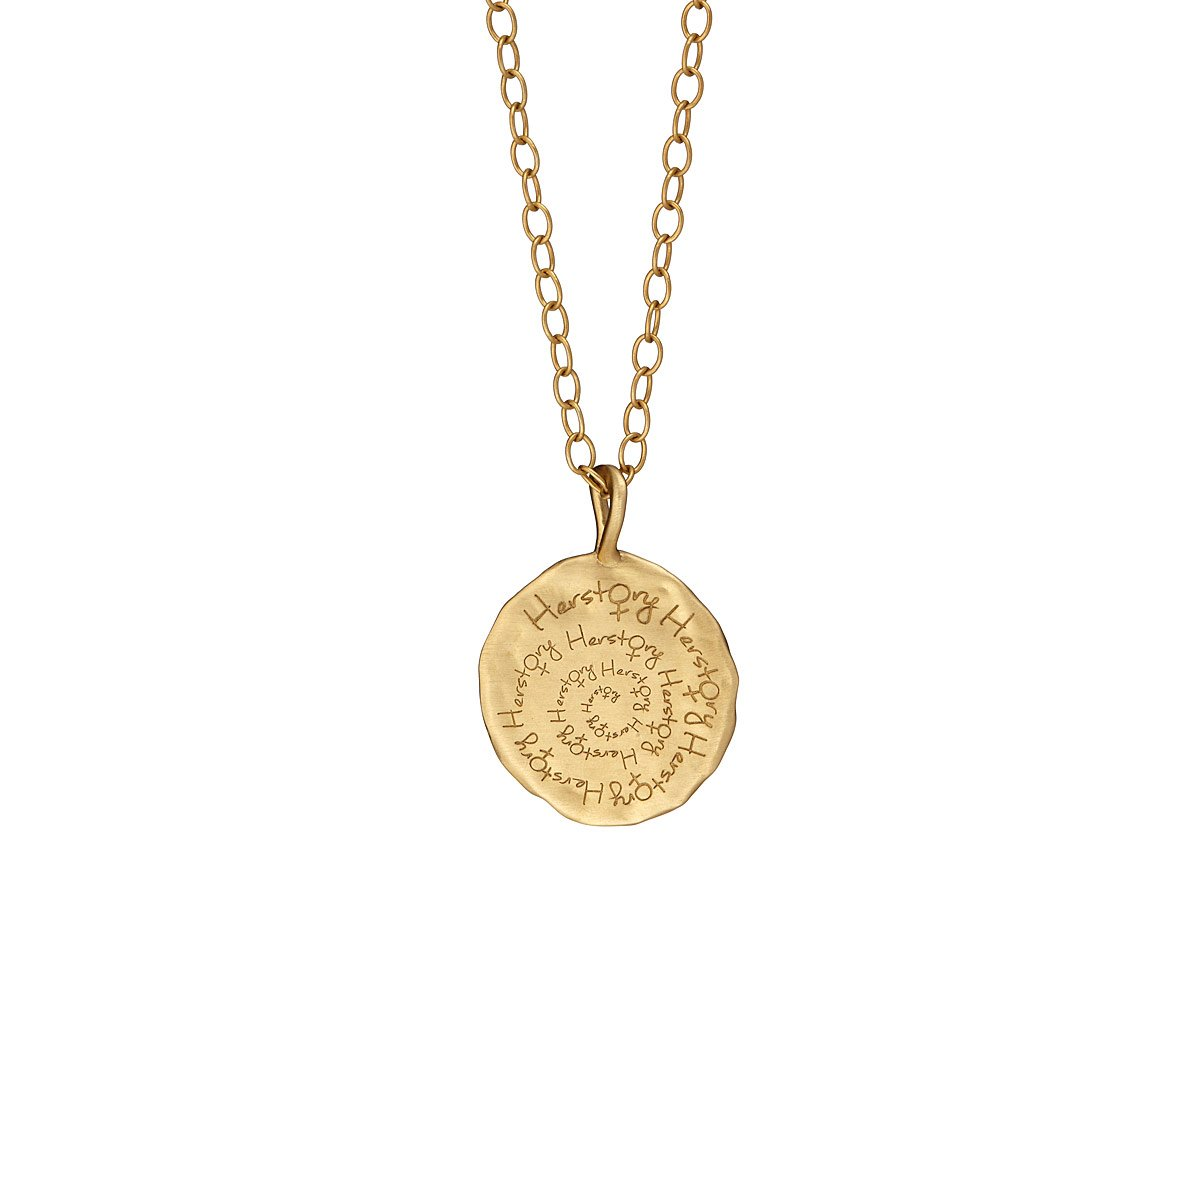 Herstory Necklace | UncommonGoods